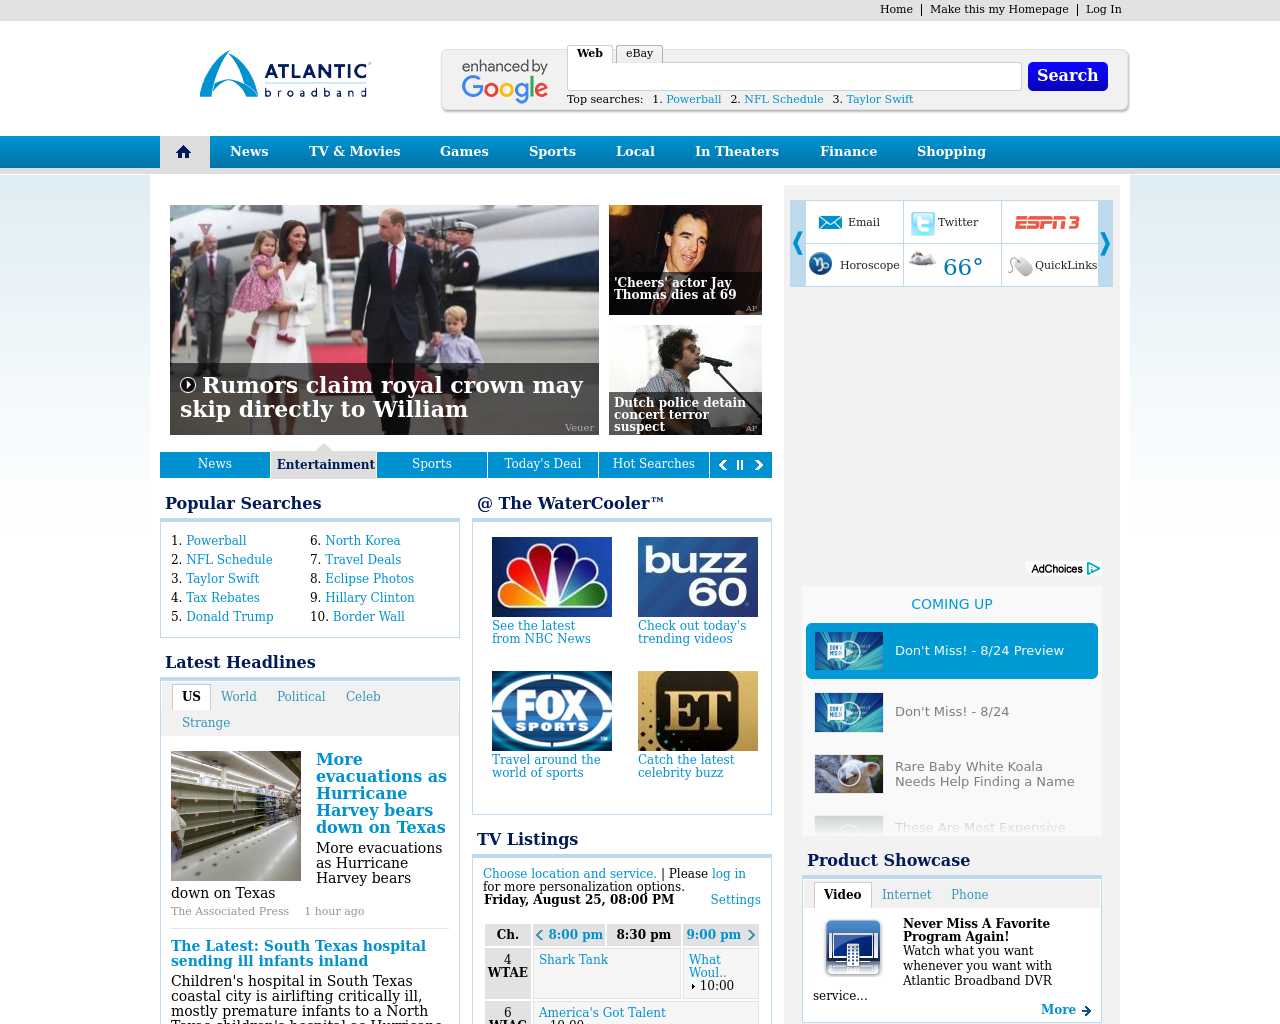 Atlantic-Broadband-Advertising-Reviews-Pricing